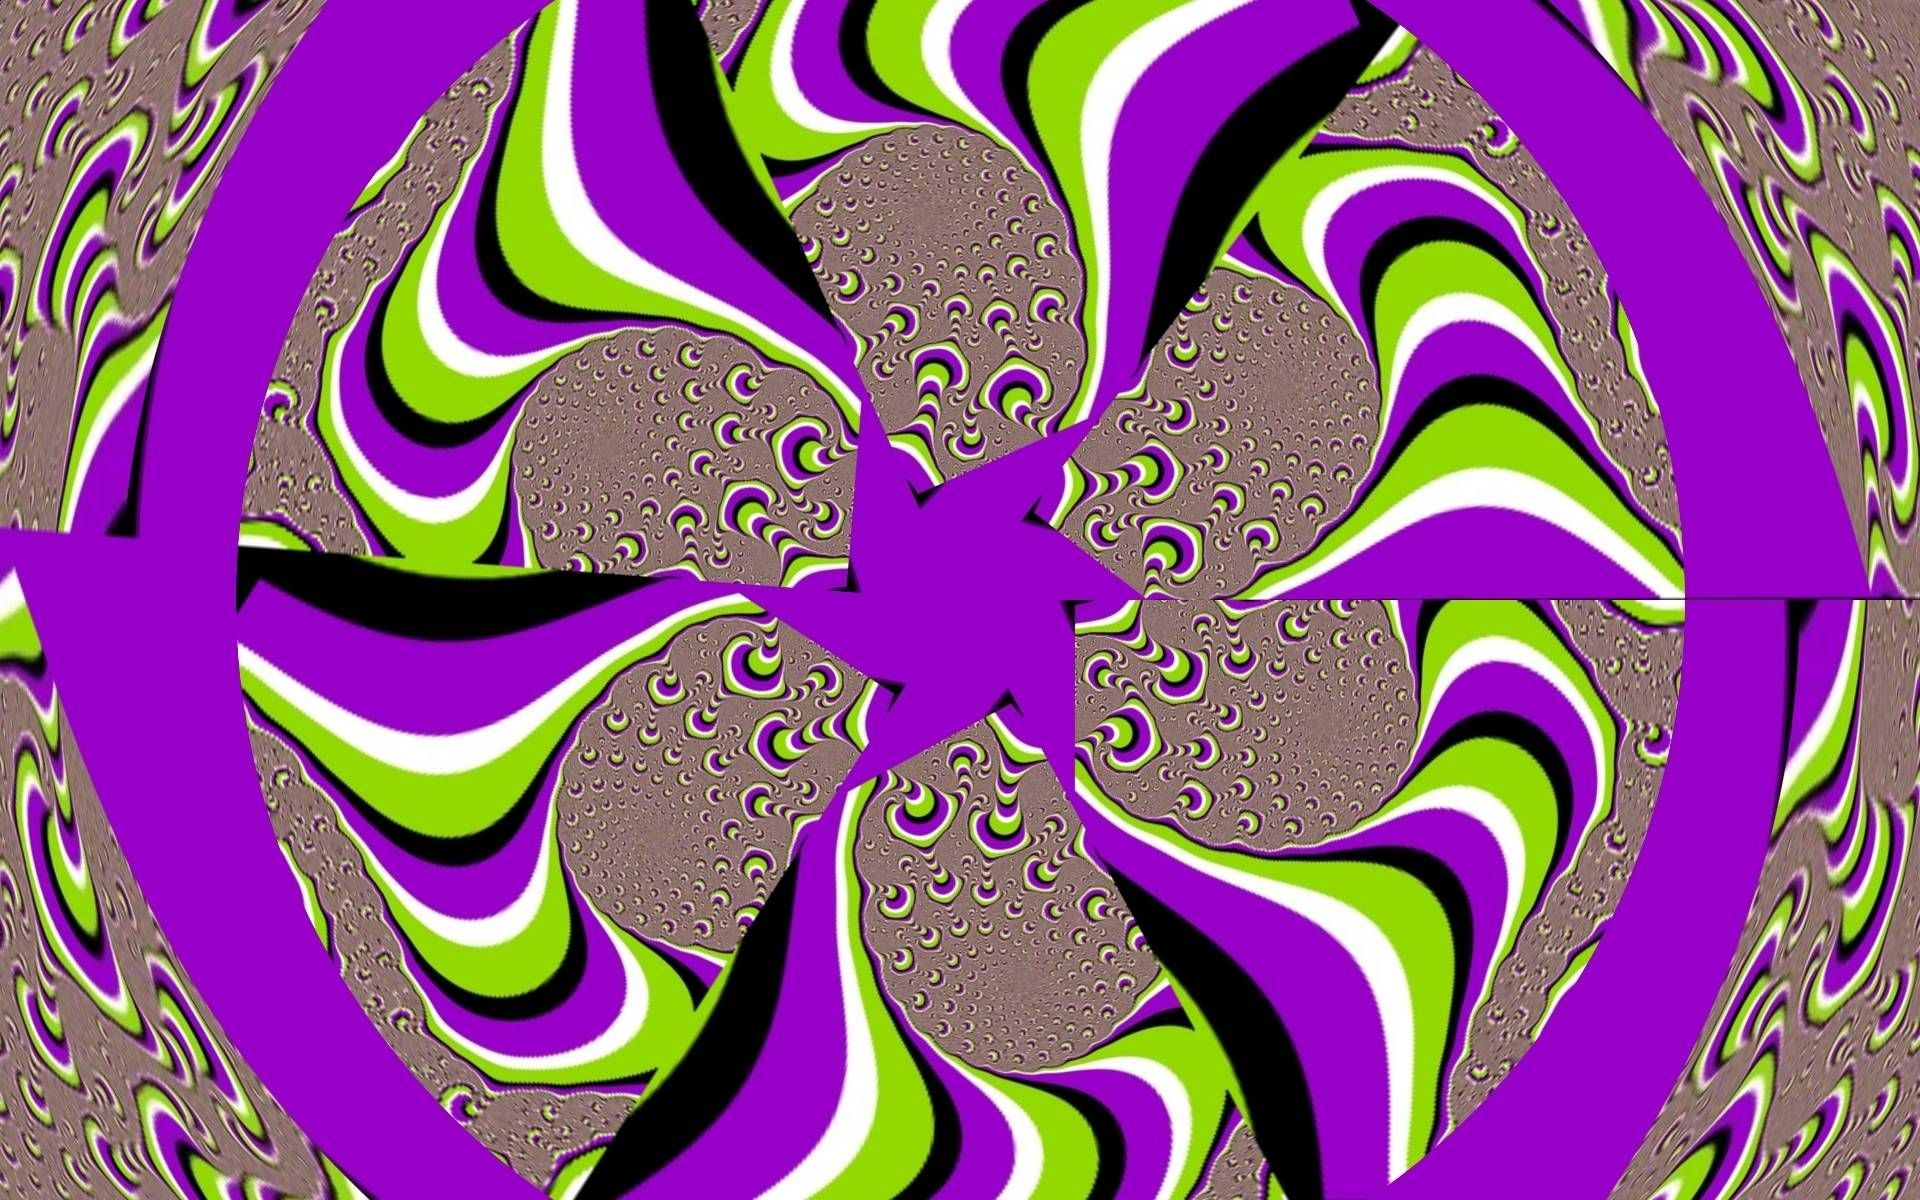 Res: 1920x1200, Moving Optical Illusions Wallpaper Hd - Free Android Application .